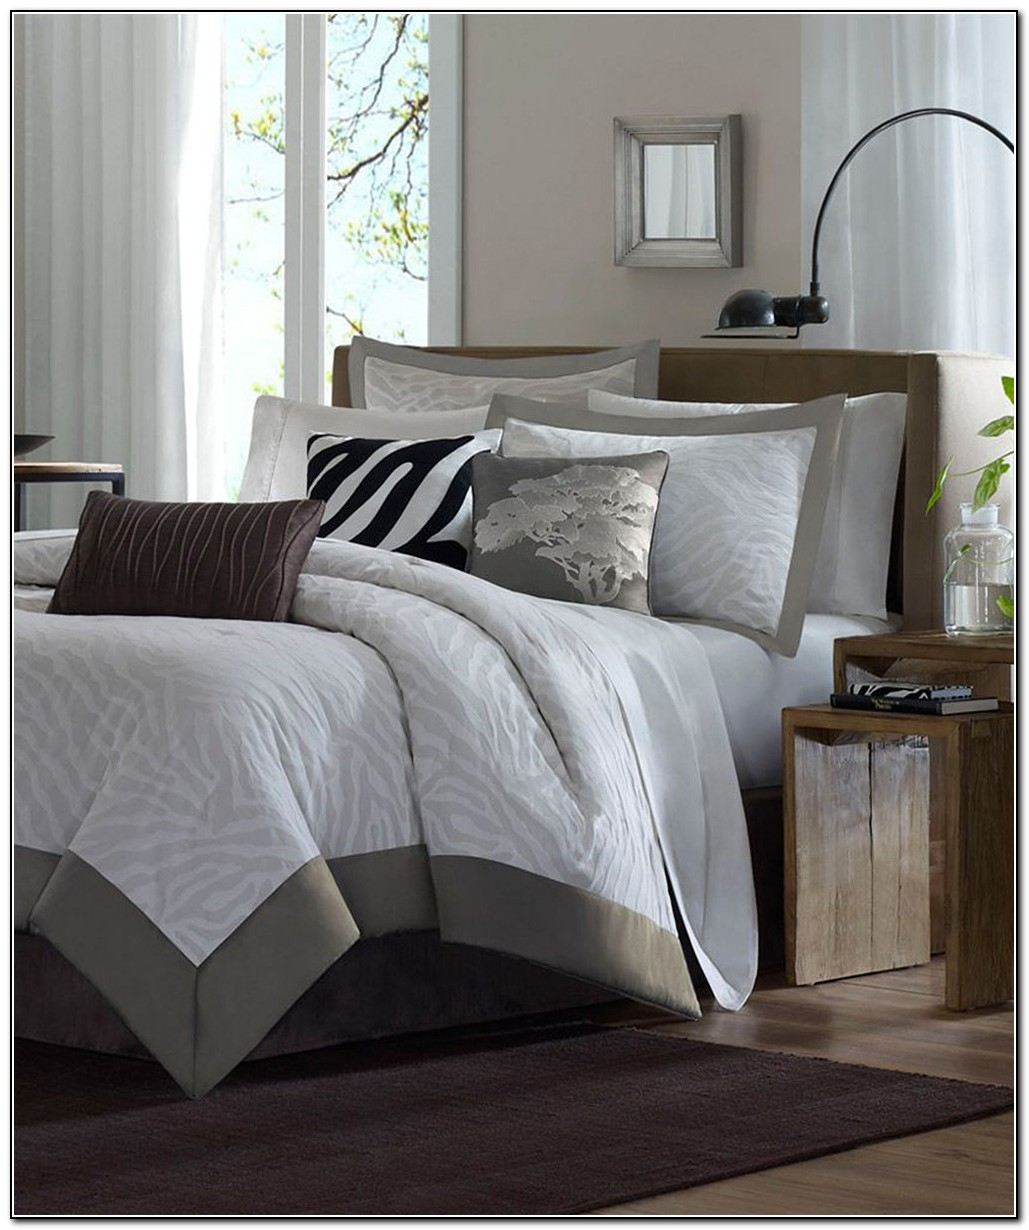 Teal And Gray Bedding Sets